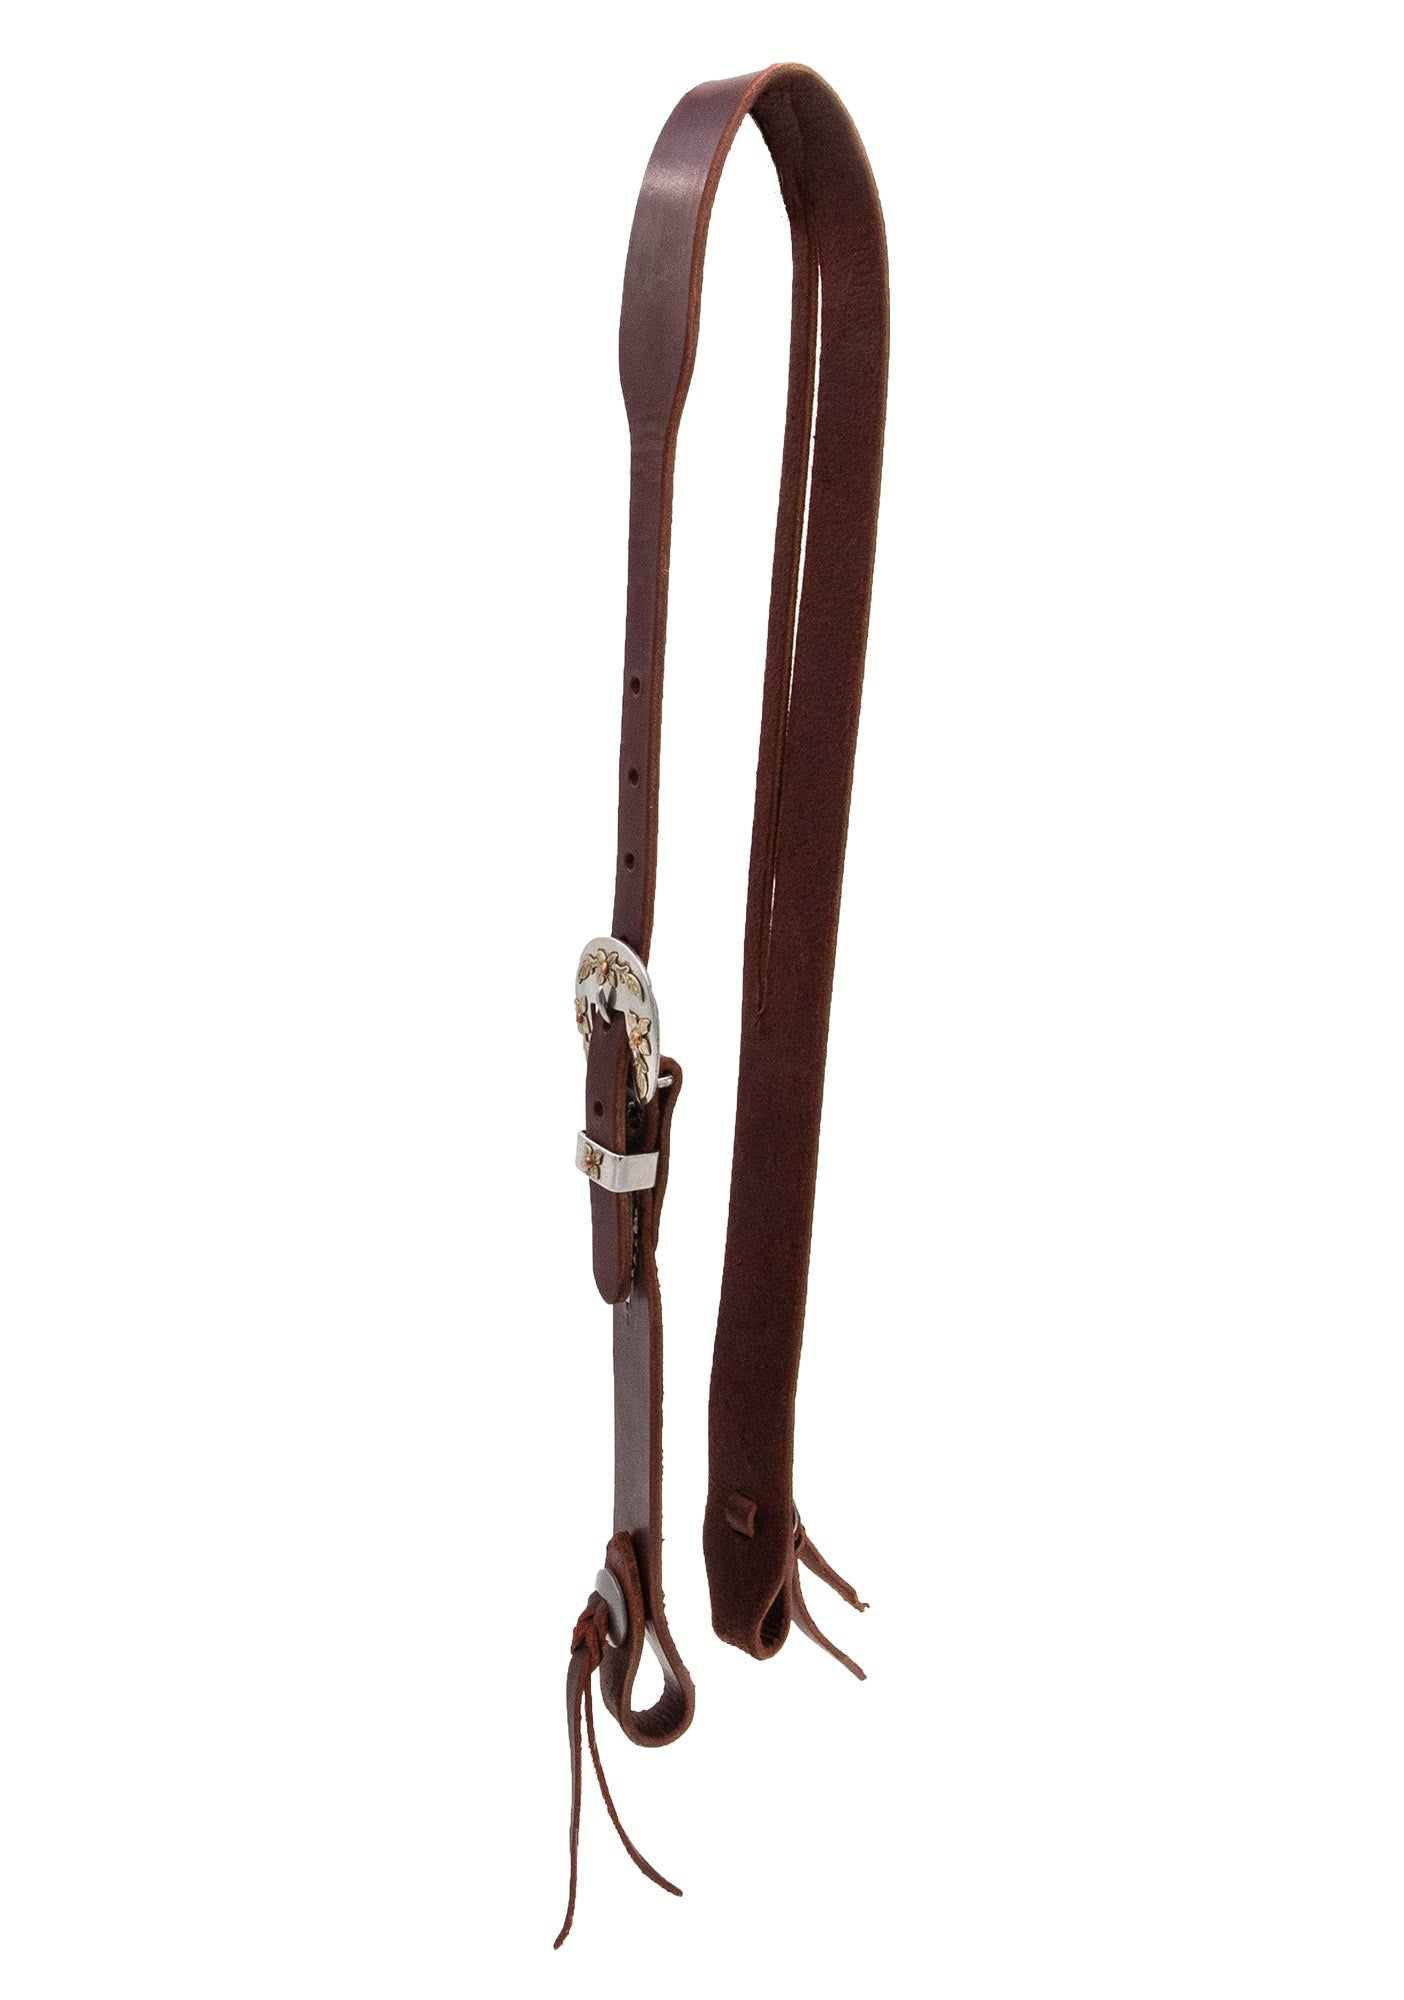 Load image into Gallery viewer, Berlin Custom Leather's Split Ear Headstall with Floral Buckle - Animal Health Express